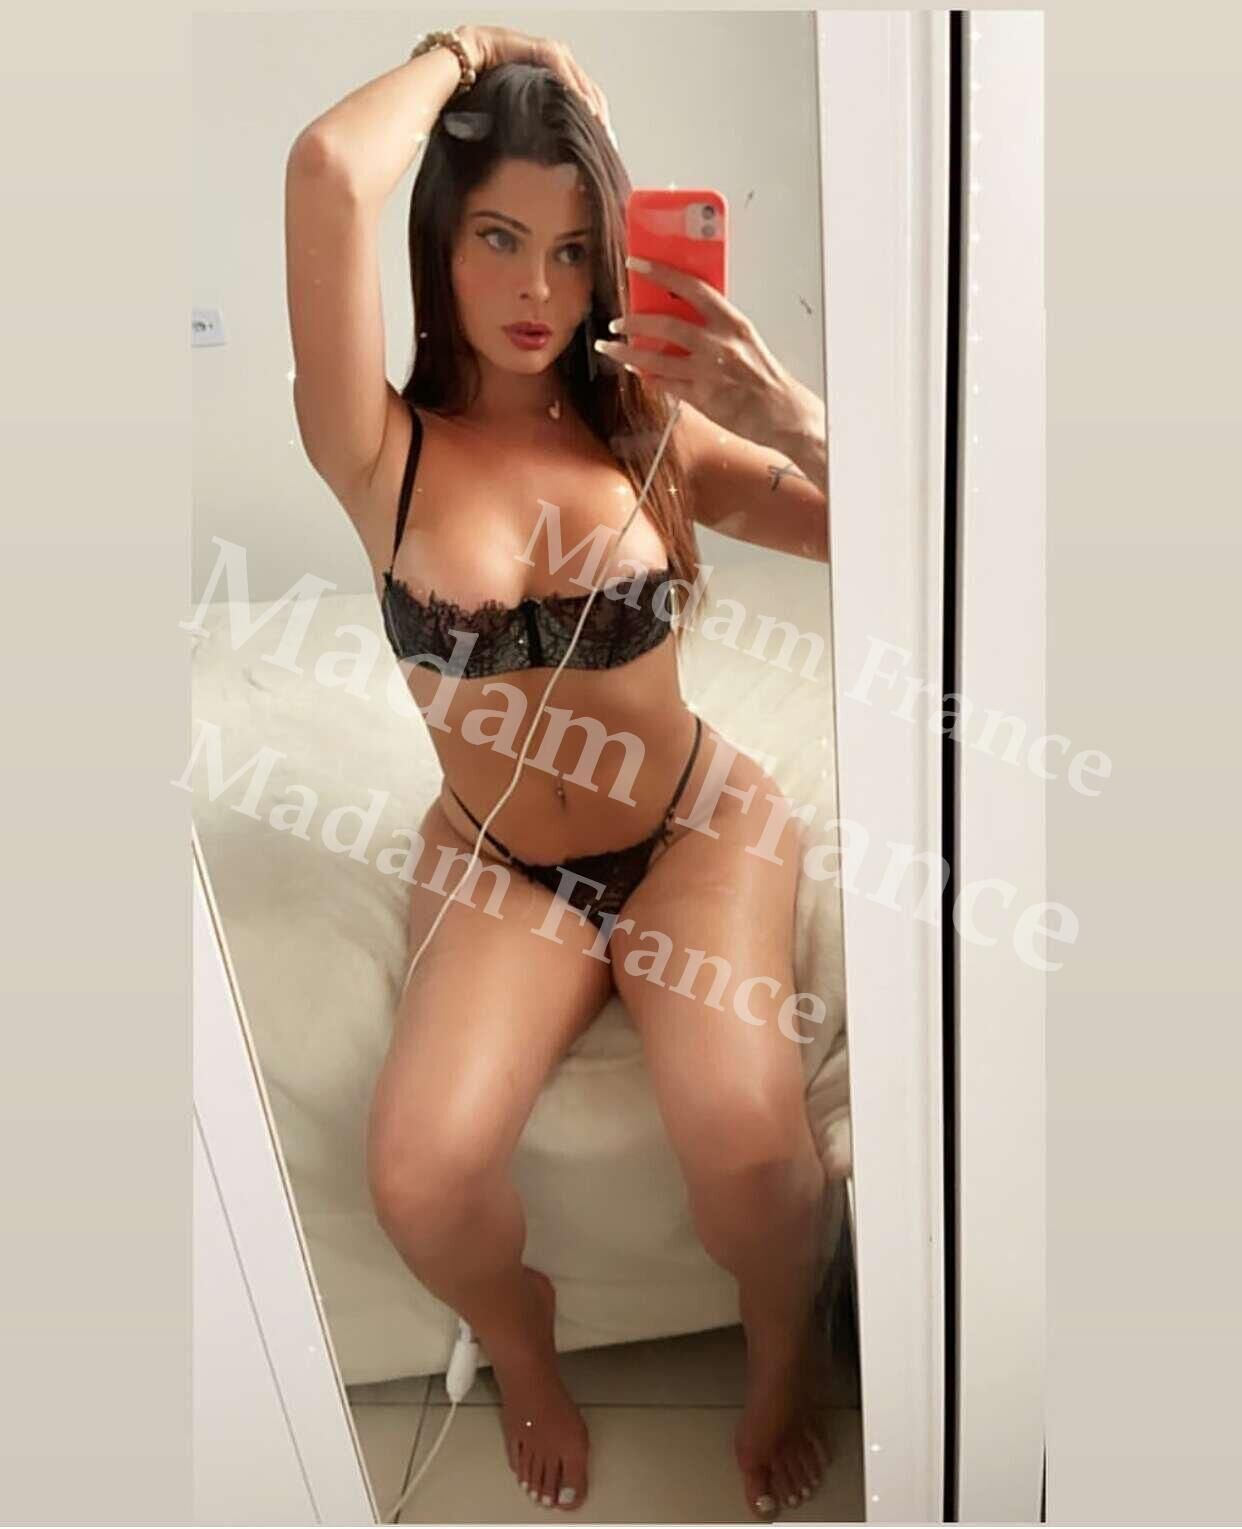 Top100 model on Madam France escort service